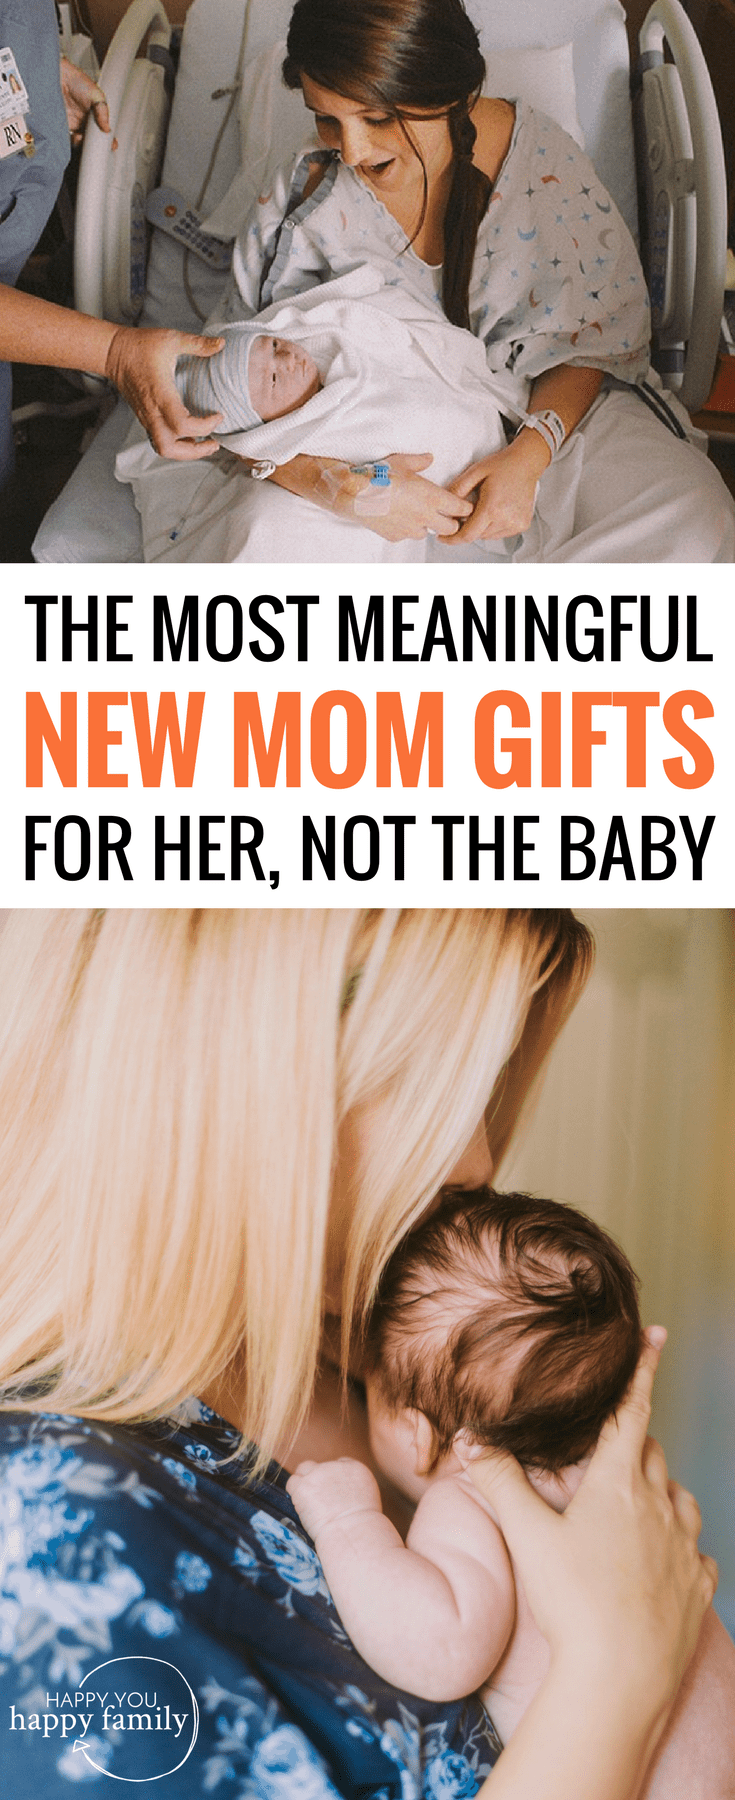 a598dffe54fe The Ultimate List of the Most Meaningful New Mom Gifts